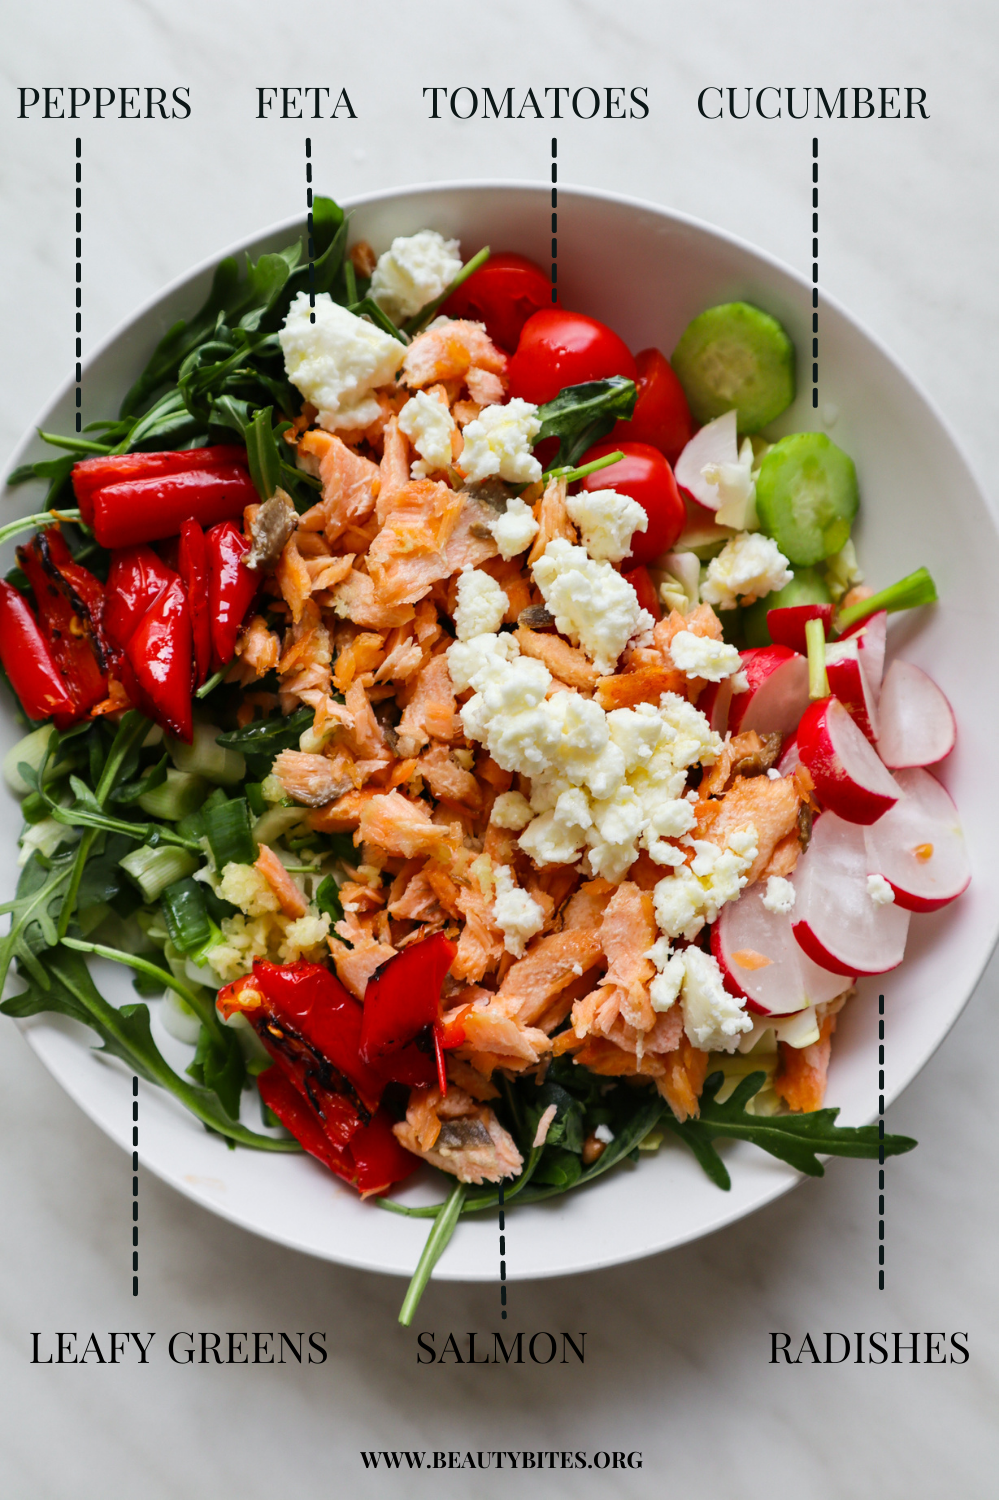 Mediterranean salmon salad recipe! This veggie-packed healthy salad recipe is the perfect summer dinner idea. Filled with a ton of roasted and fresh vegetables, pan-seared salmon and some feta cheese, this easy low carb recipe is full of flavor, antioxidants and it's just delicious. Also easy to meal prep for the week!